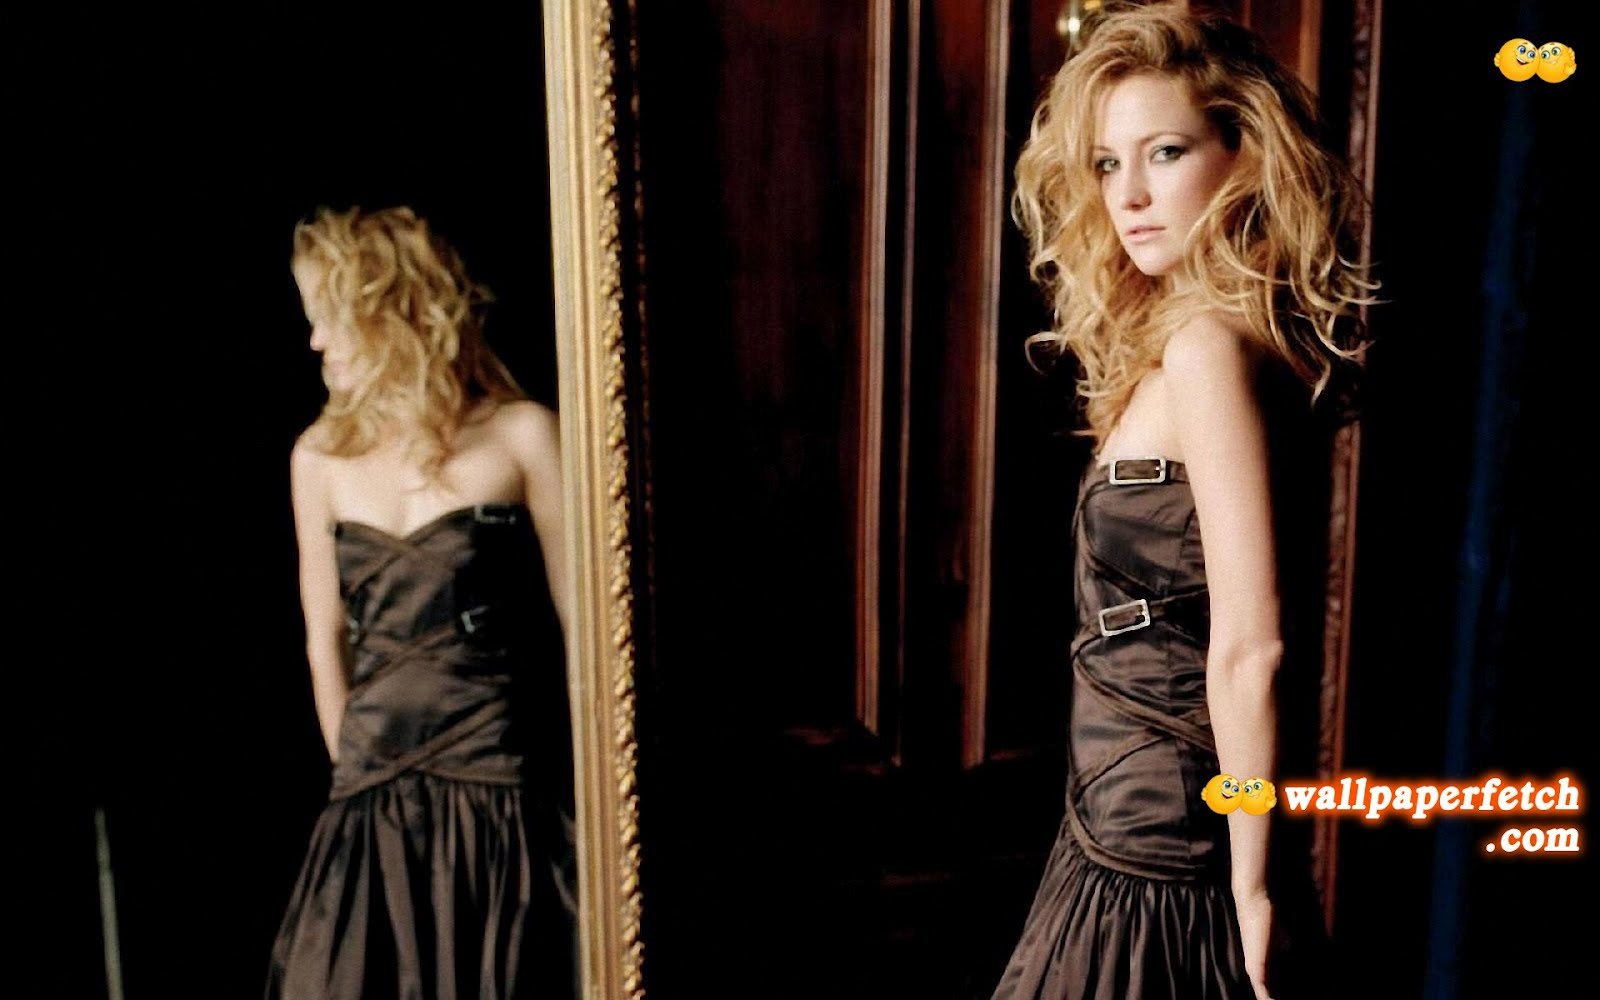 tags kate hudson sexy wallpapers kate hudson sexy wallpapers 2012